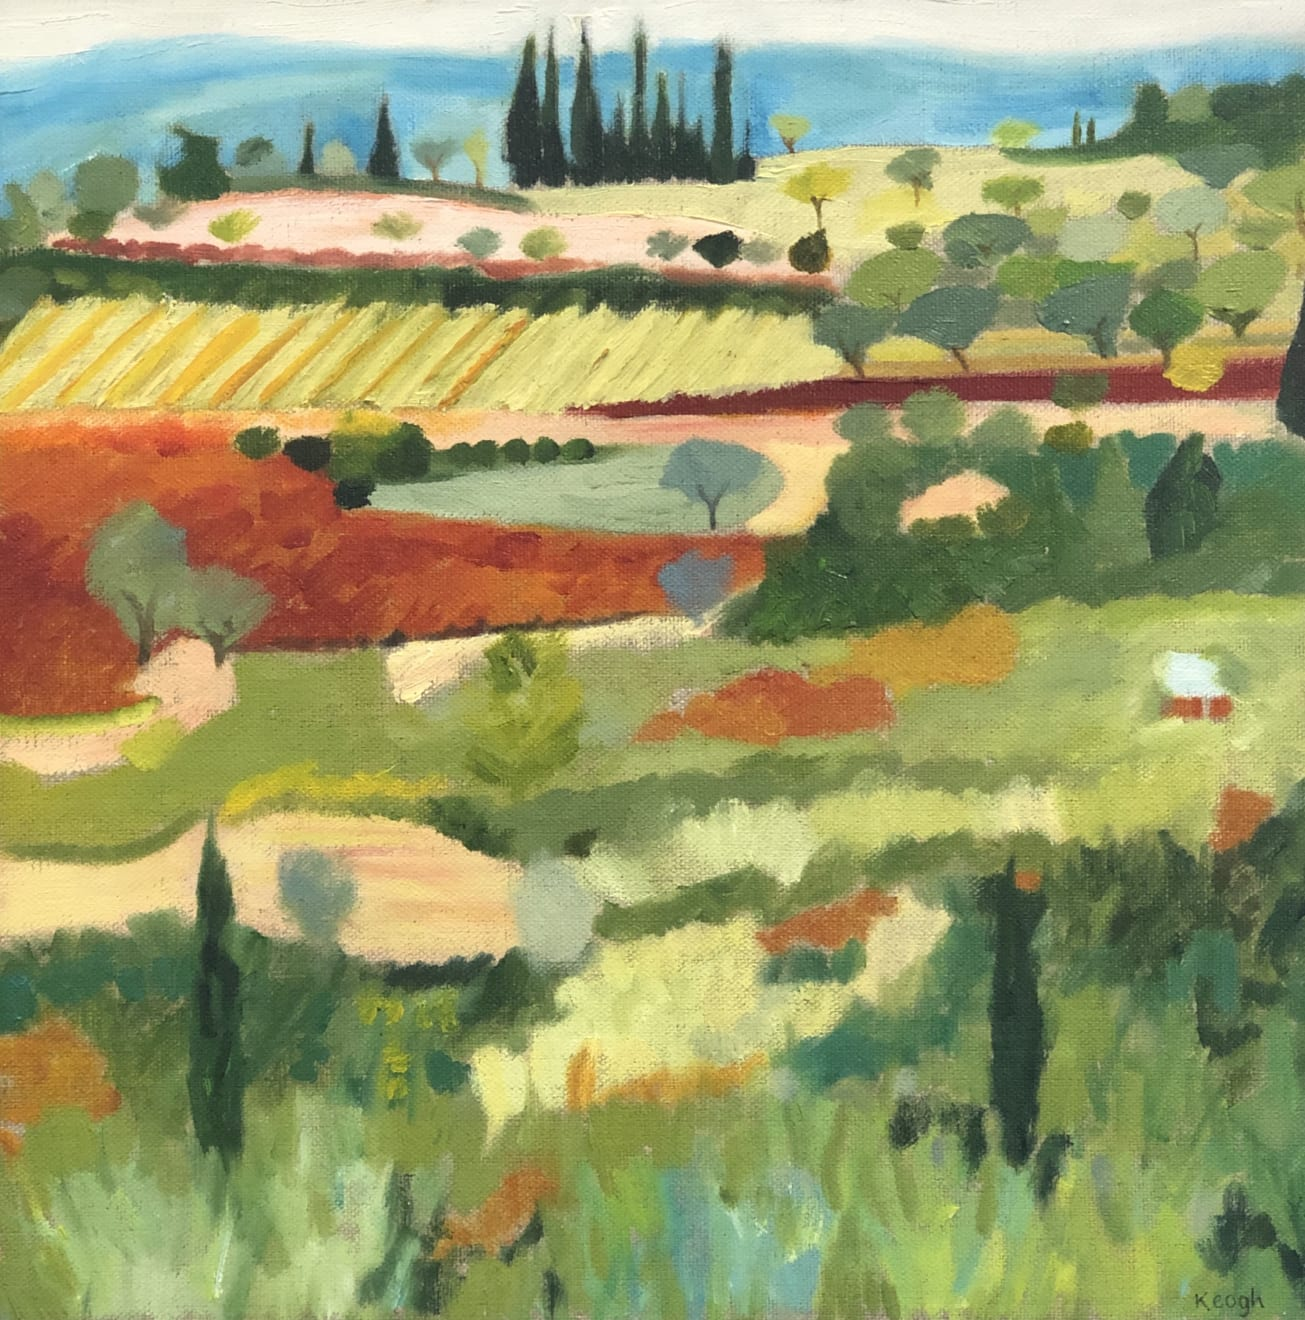 Karen Keogh, Distant Olive Grove